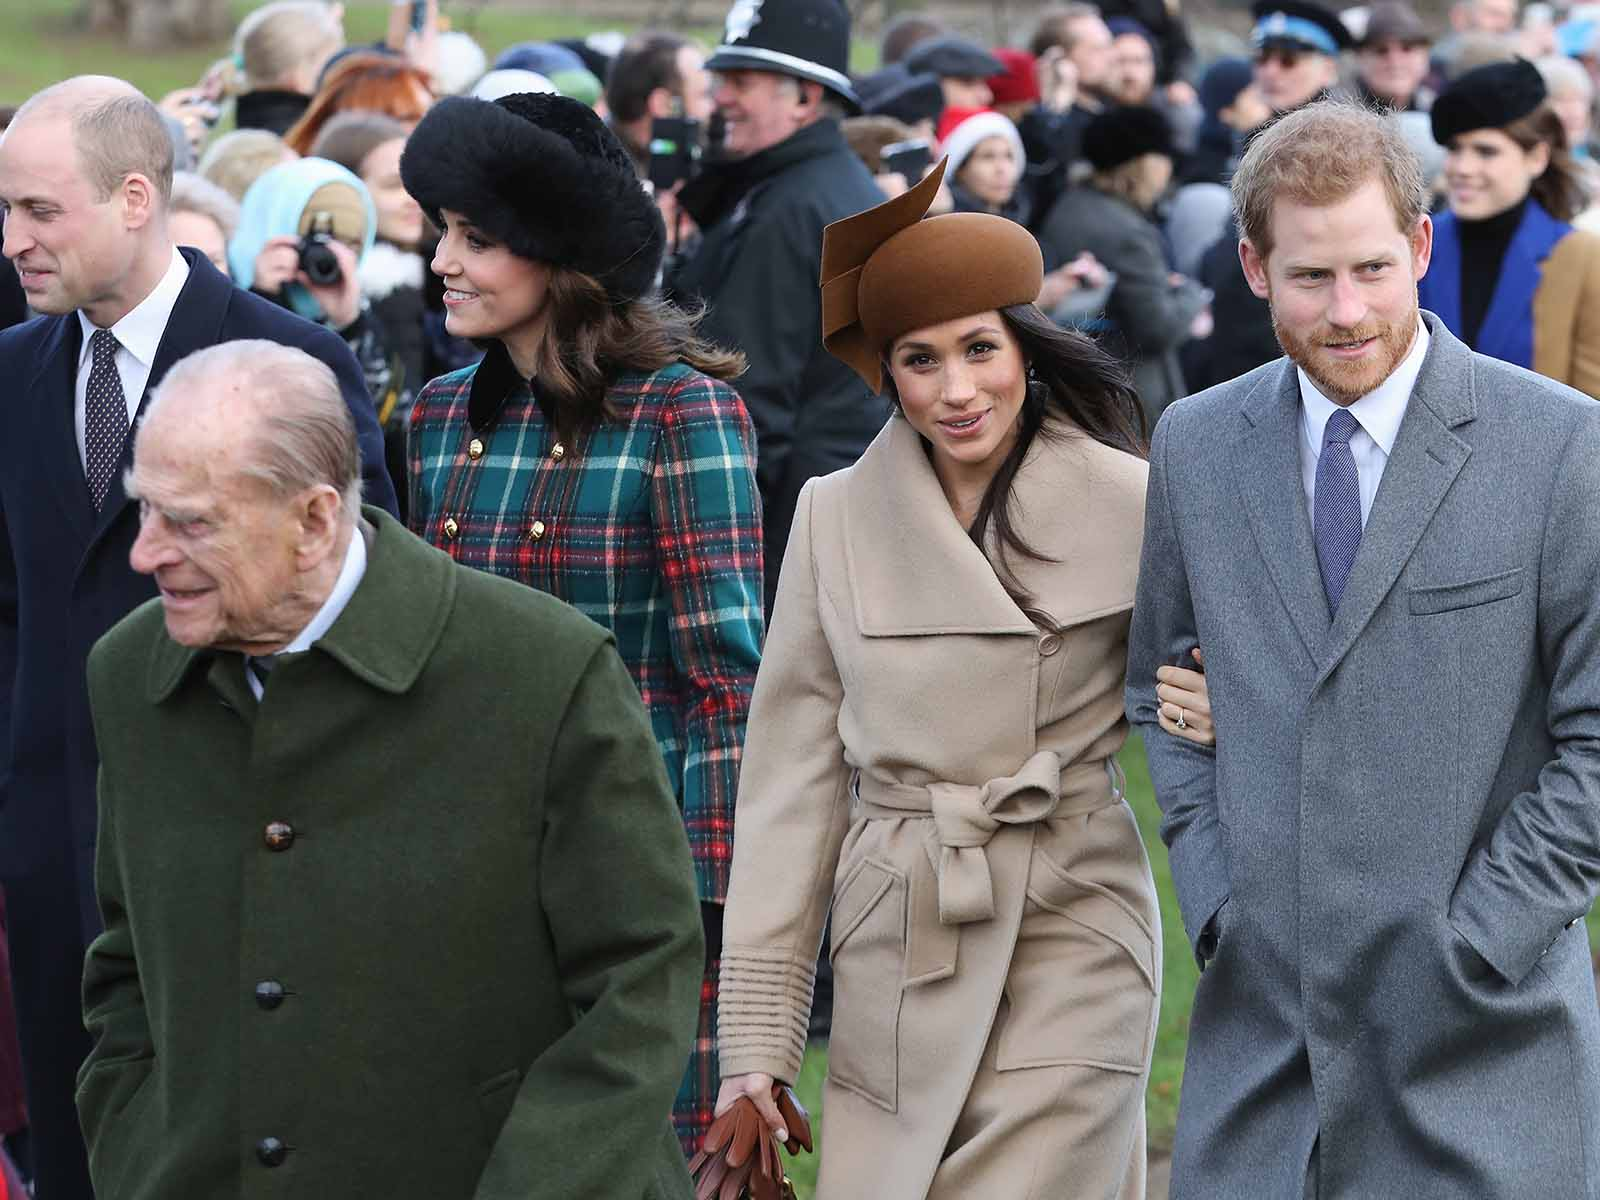 When Meghan Markle and Prince Harry stepped back from the throne, Prince Philip was highly critical. Learn why he tried to stop the Sussexes.